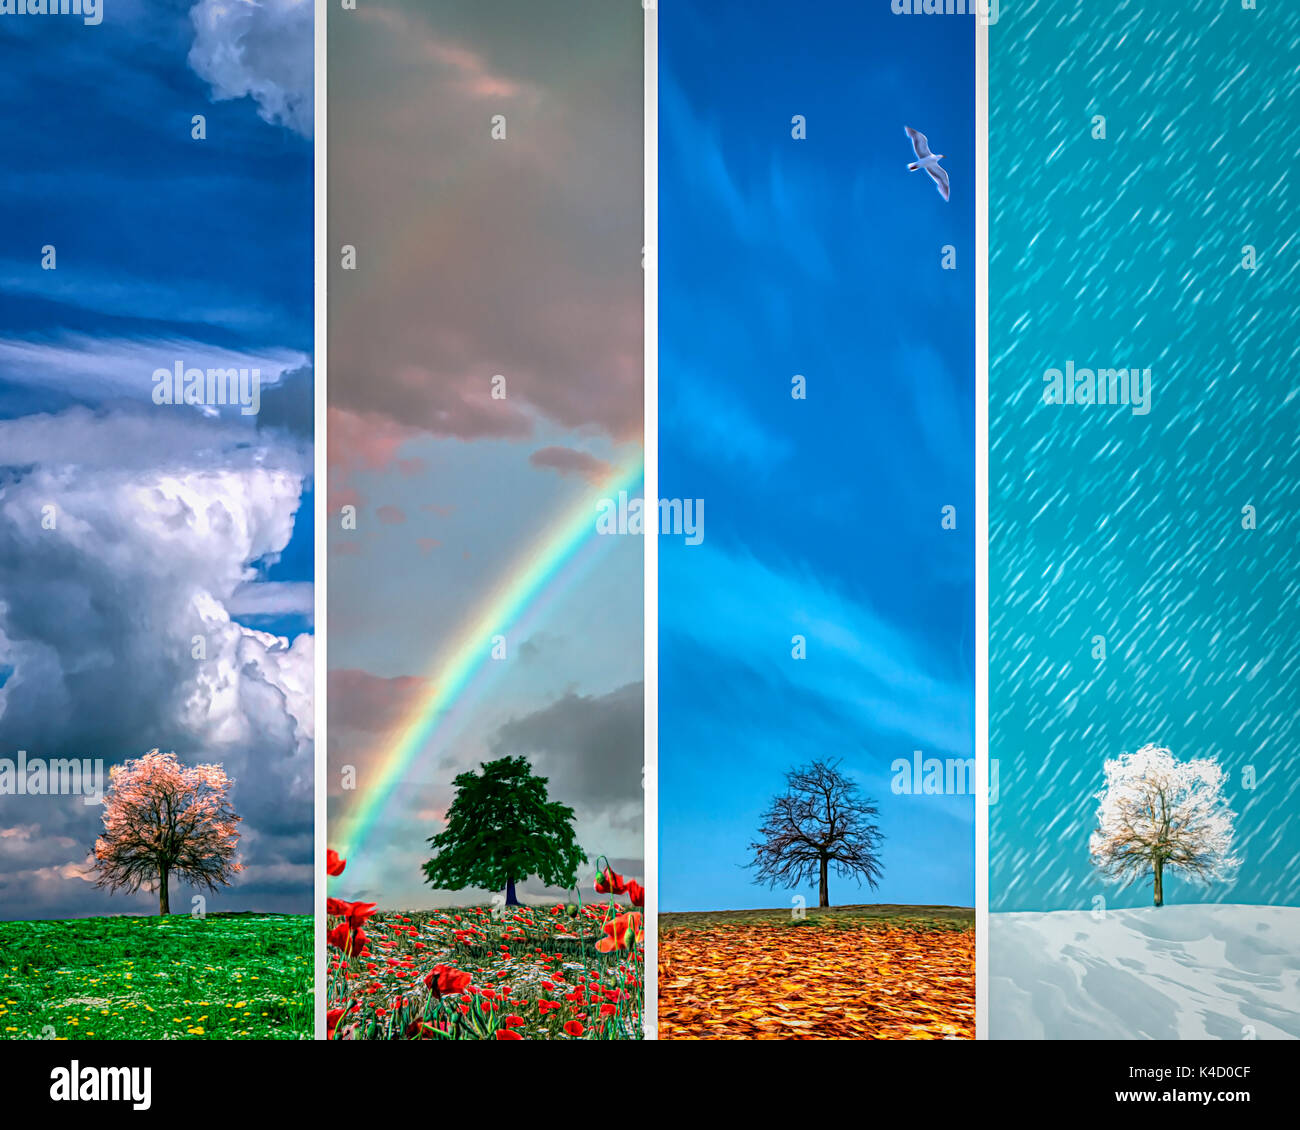 FOUR SEASONS: Combination of Spring, Summer, Autumn and Winter - Stock Image